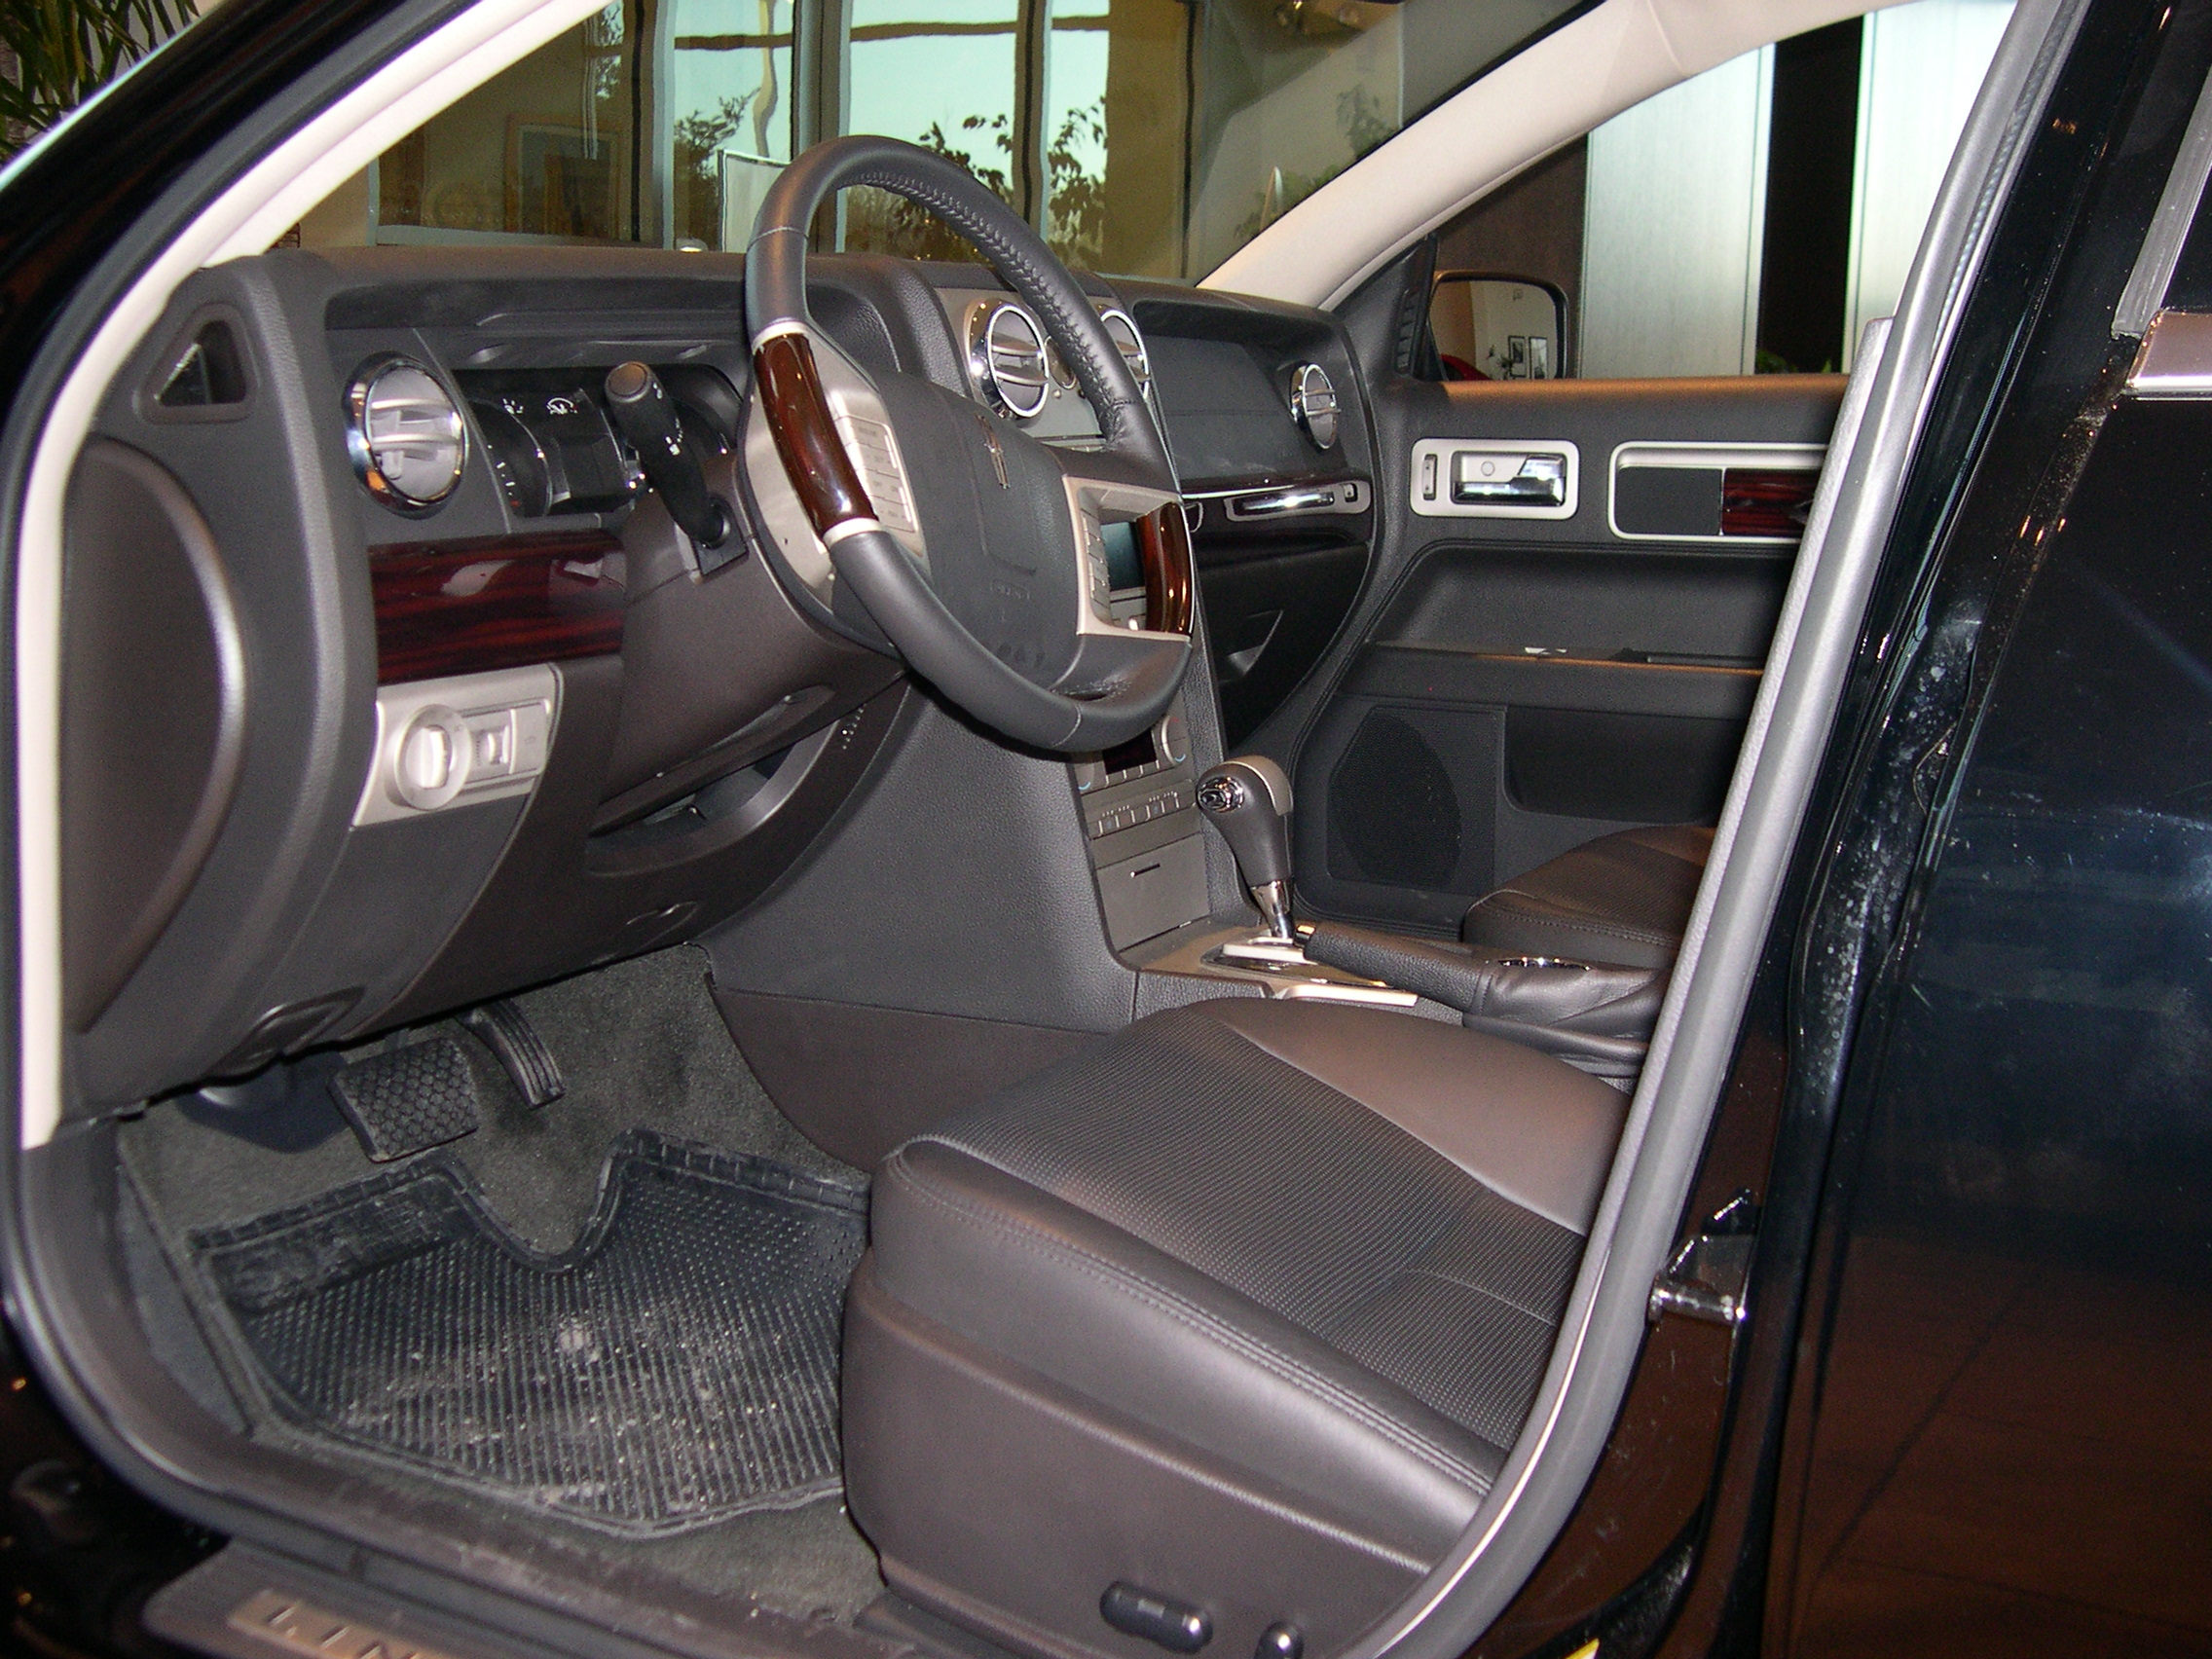 File:2006 Lincoln Zephyr interior.JPG - Wikimedia Commons